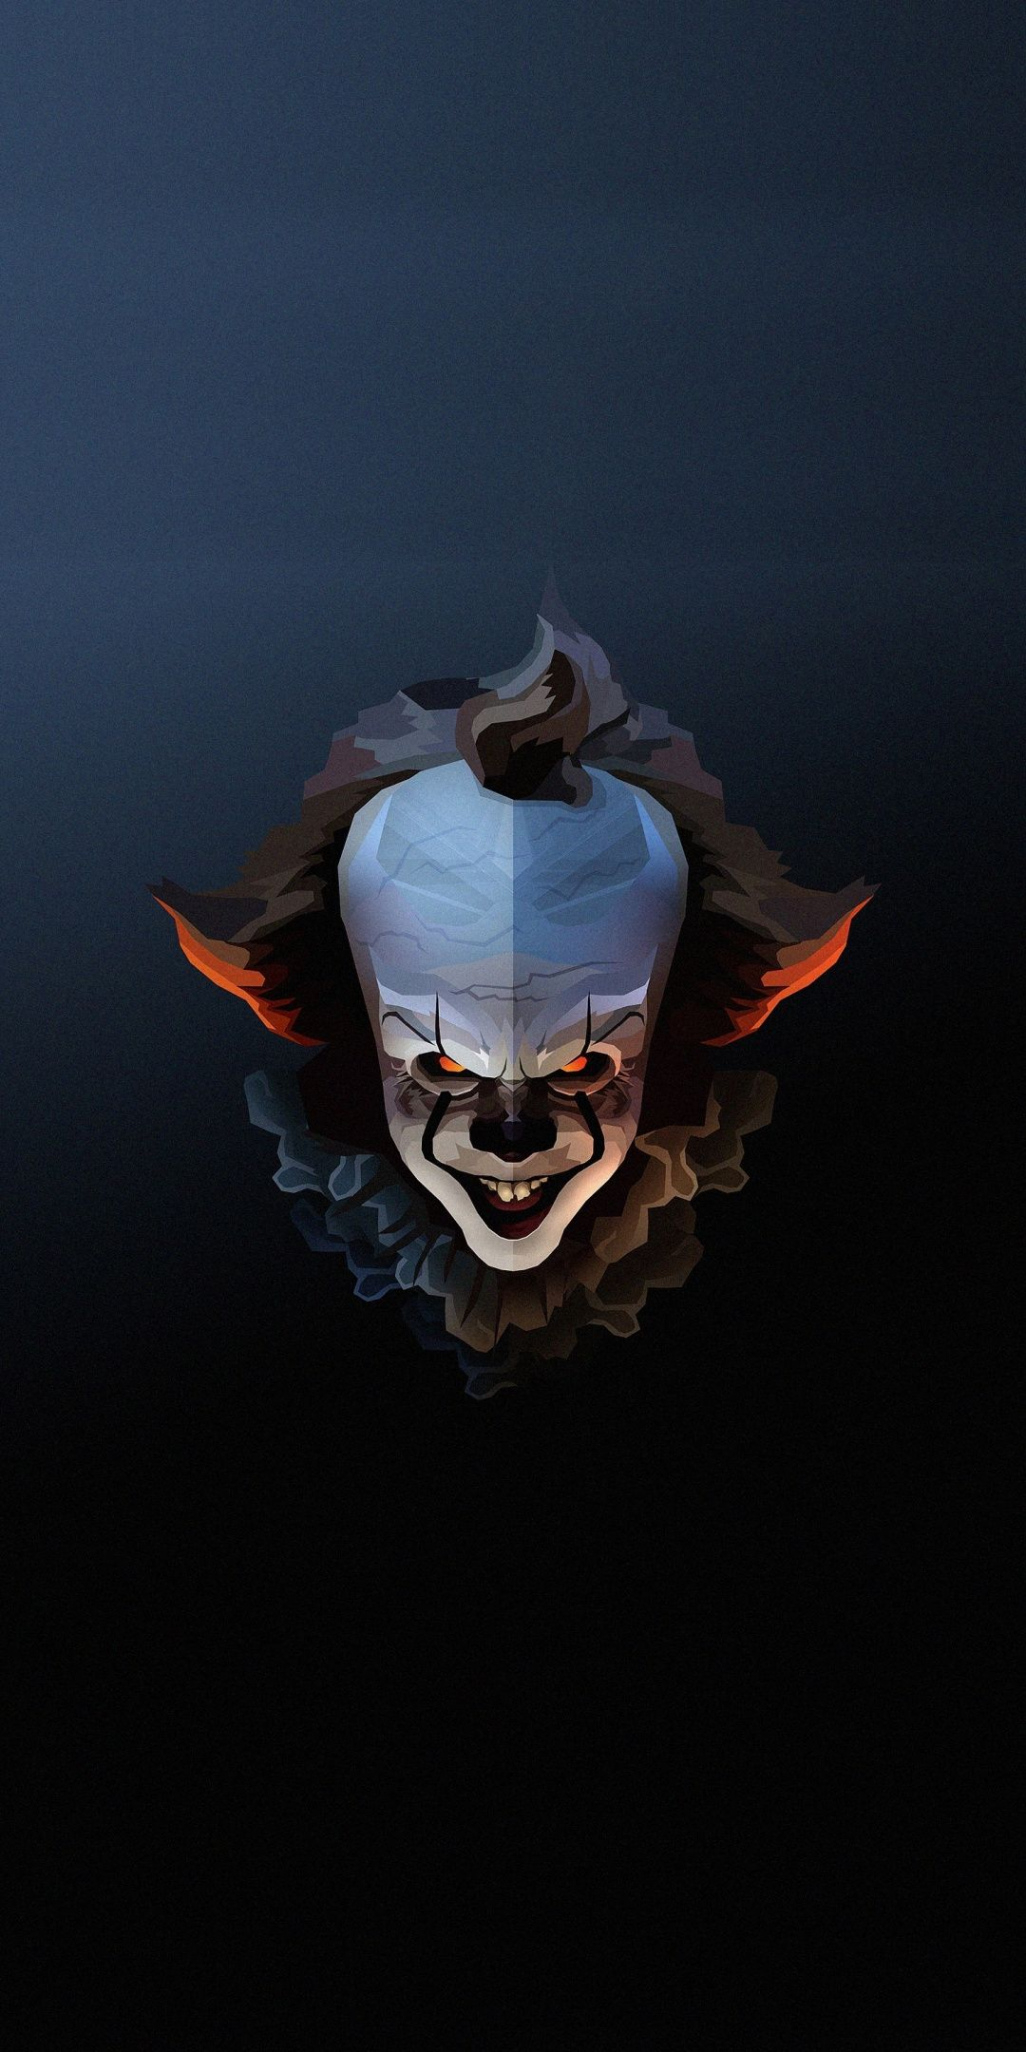 Free Download Pennywise The Clown Halloween Artwork 1080x2160